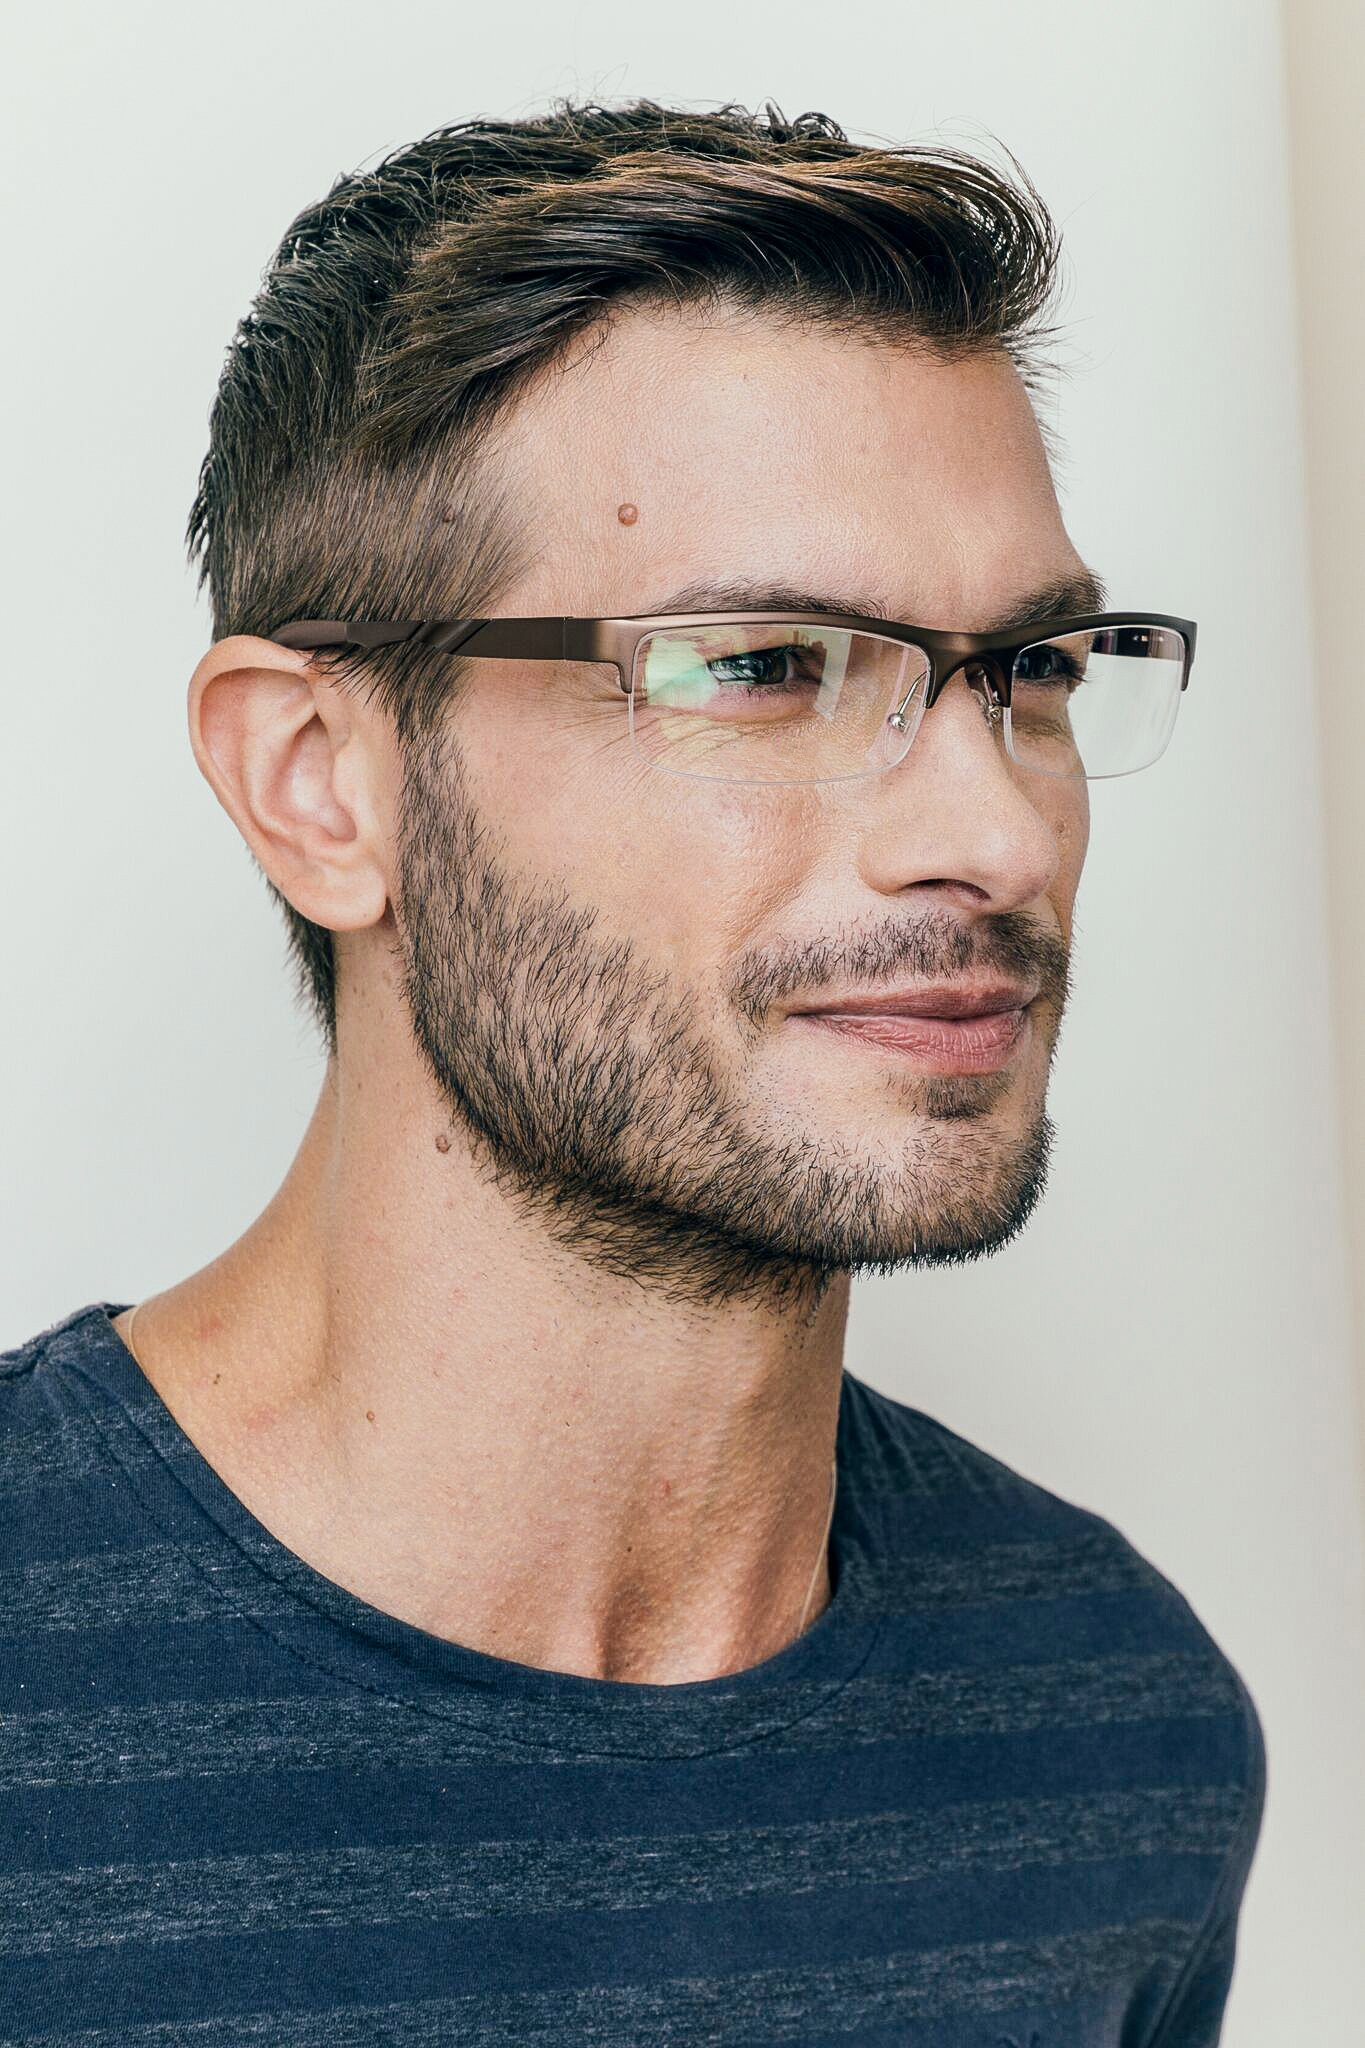 brunette man wearing brown metal semi-rimless glasses